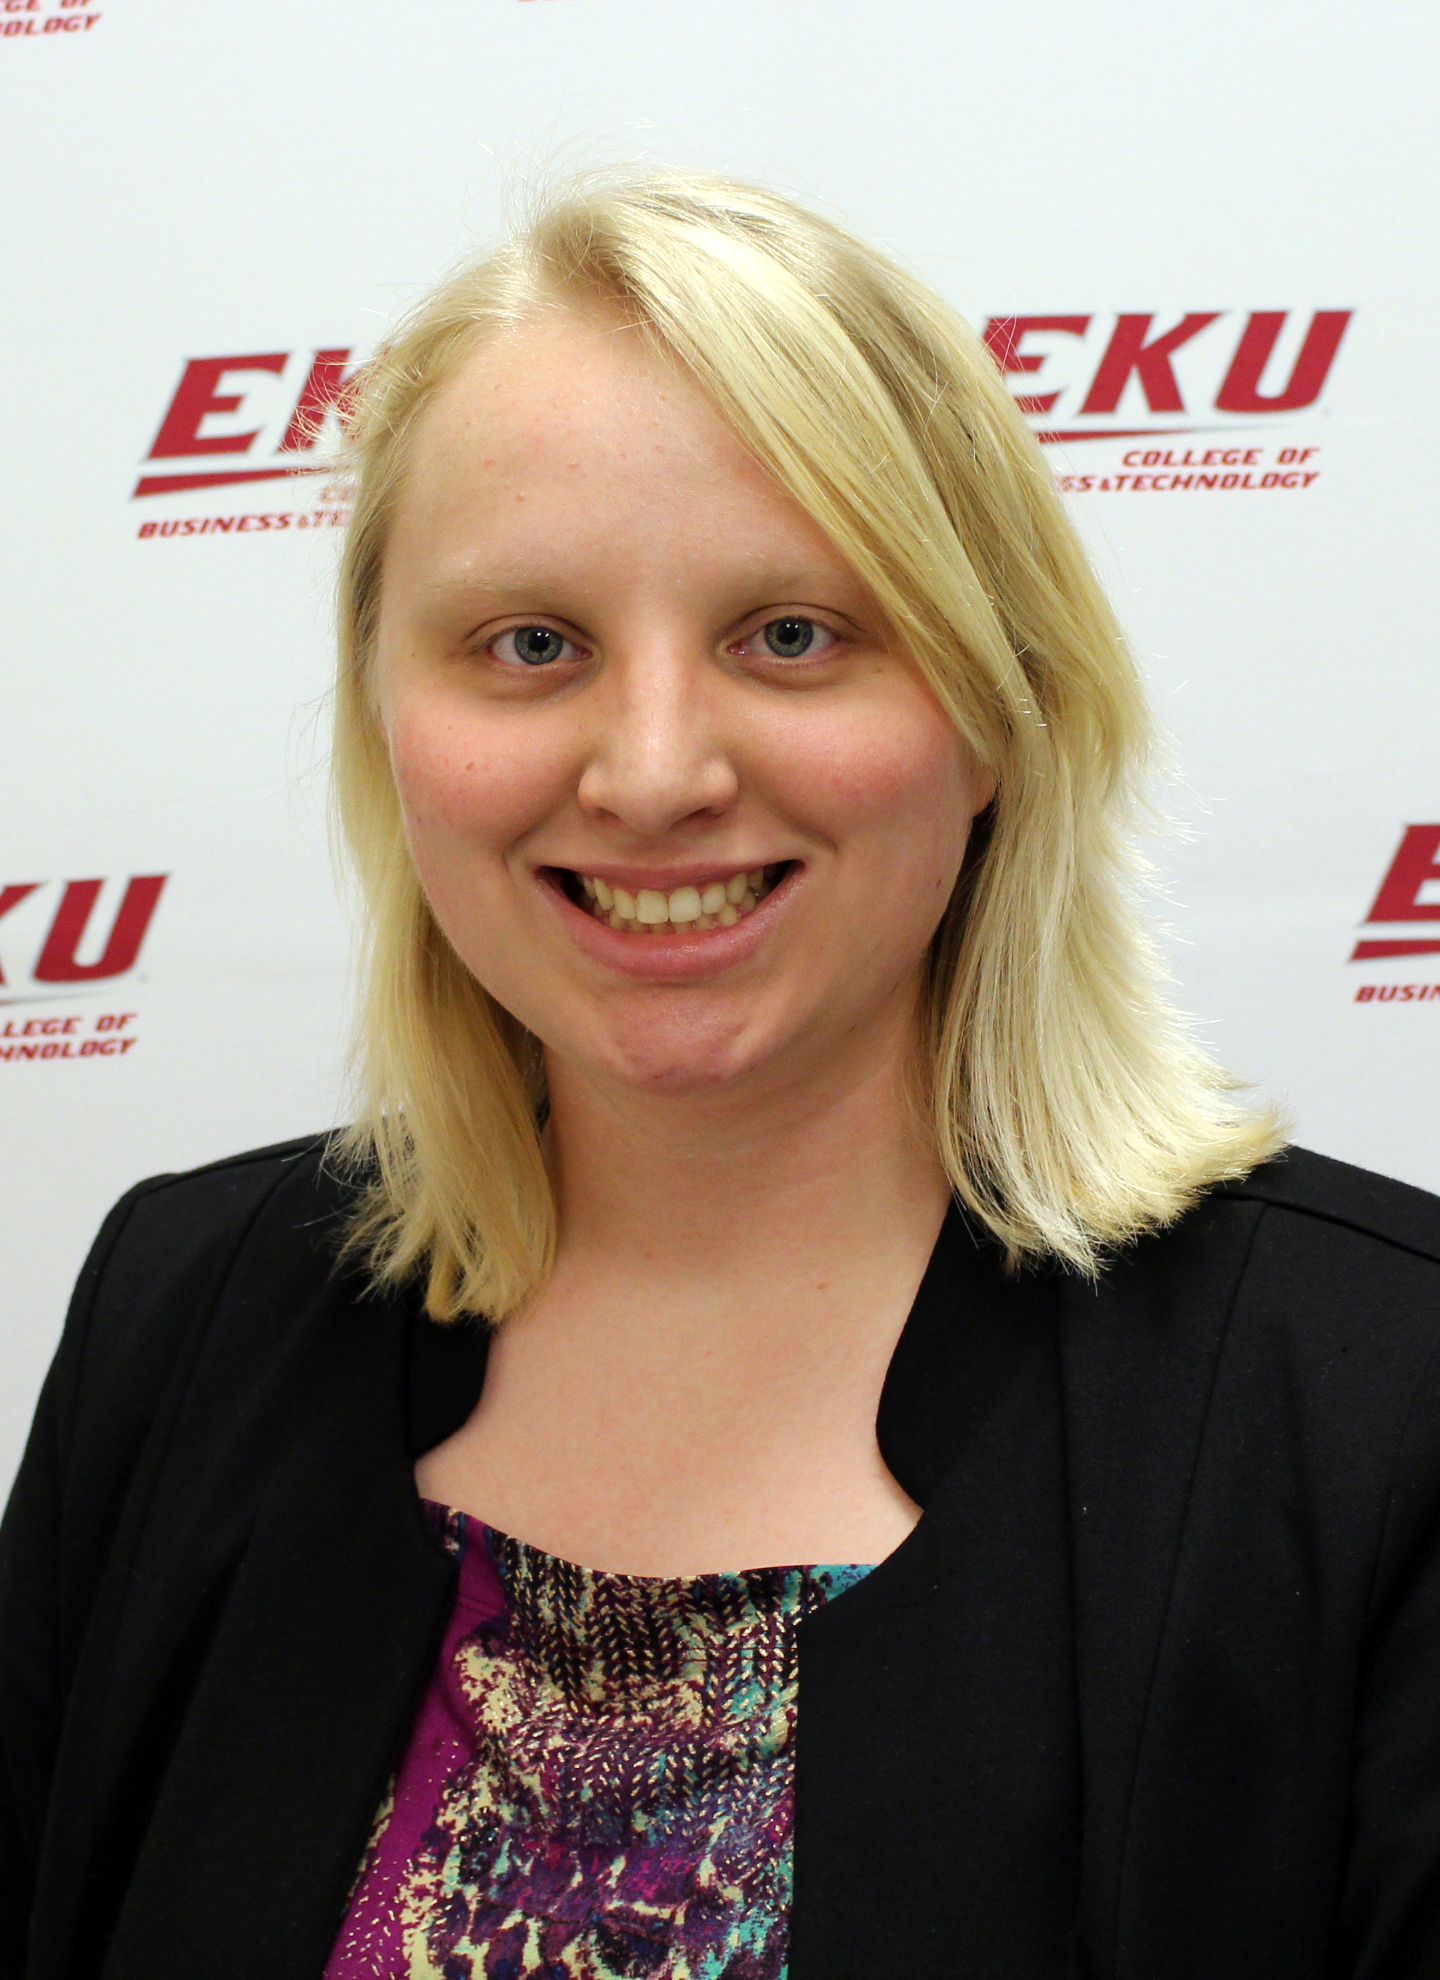 Smith Awarded Auto Owners Internship School Of Business Eastern Kentucky University